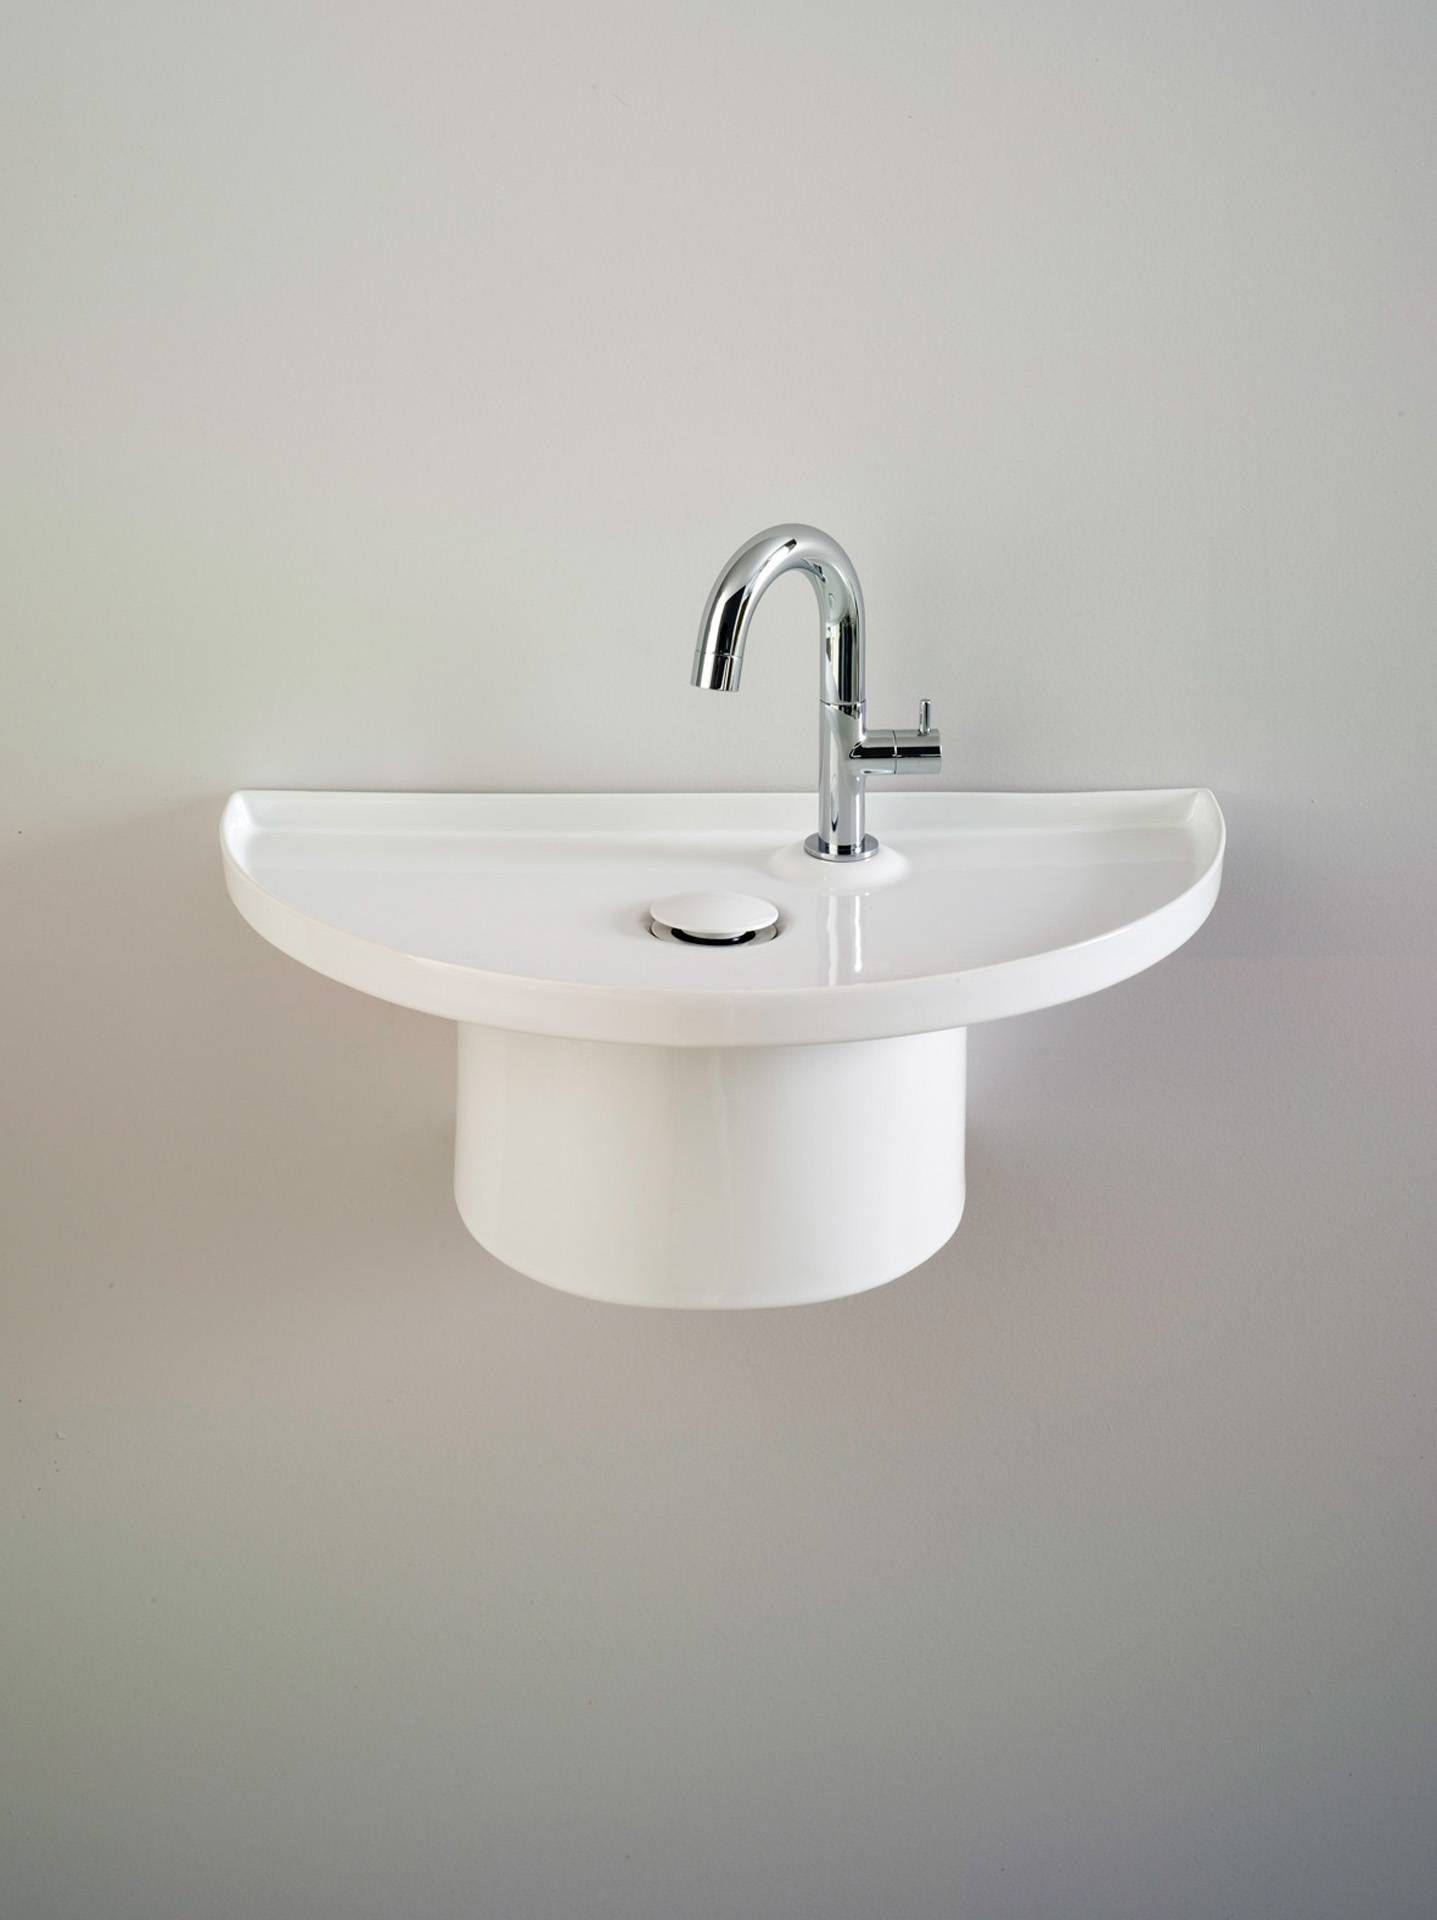 Handscale Small Wall Hung Washbasin In White Ceramic The Basin Can Be Fixed At Diffe Distances From Elite Bathware And Tiles